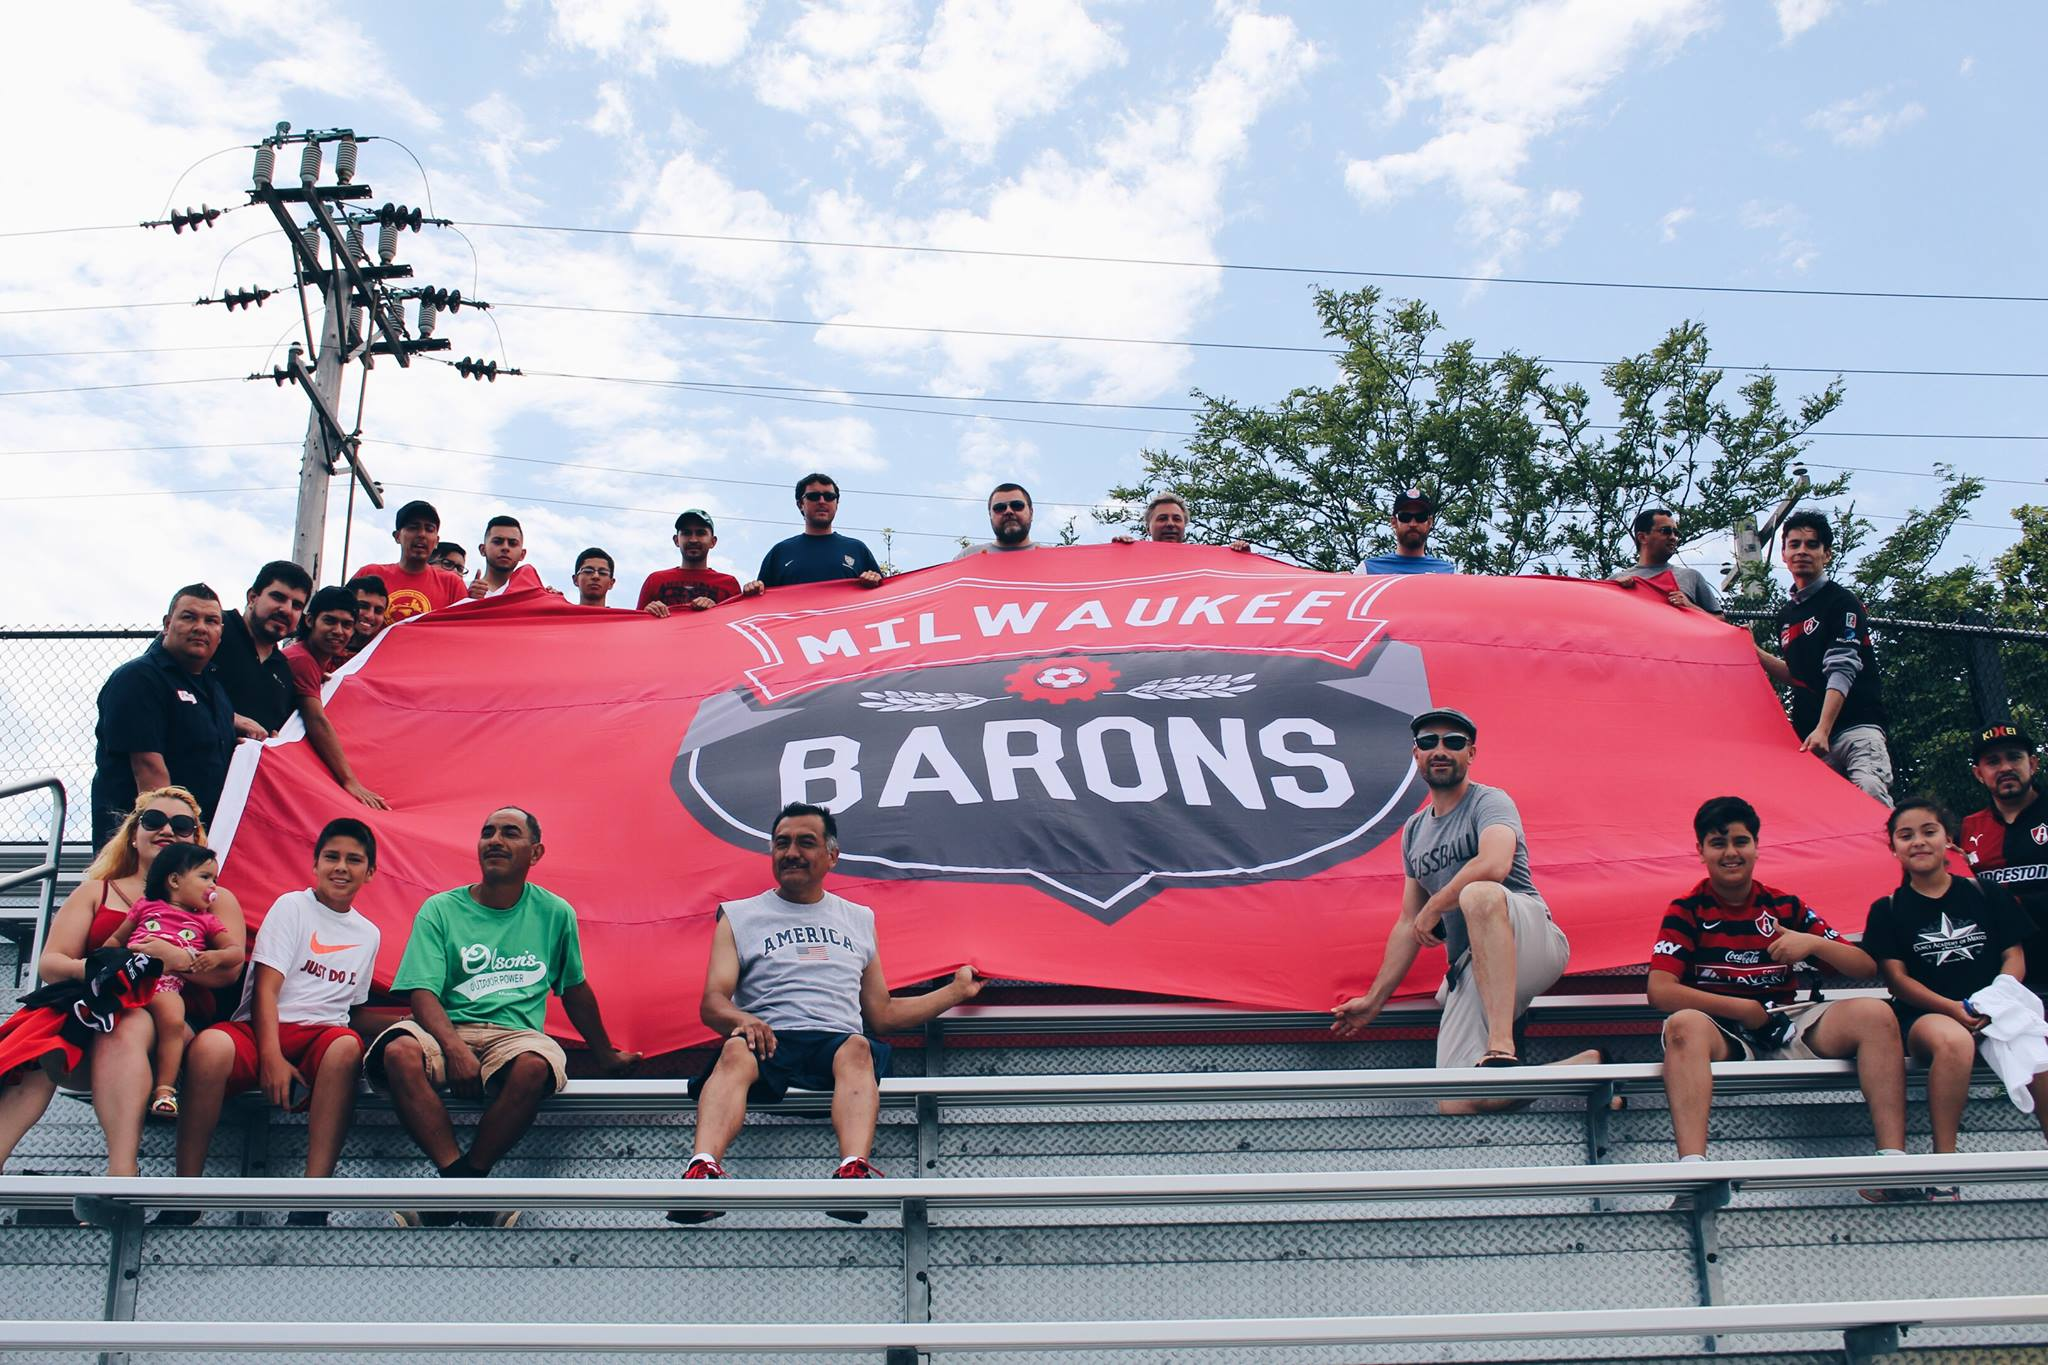 Milwaukee Barons Organize Community March for Professional Soccer